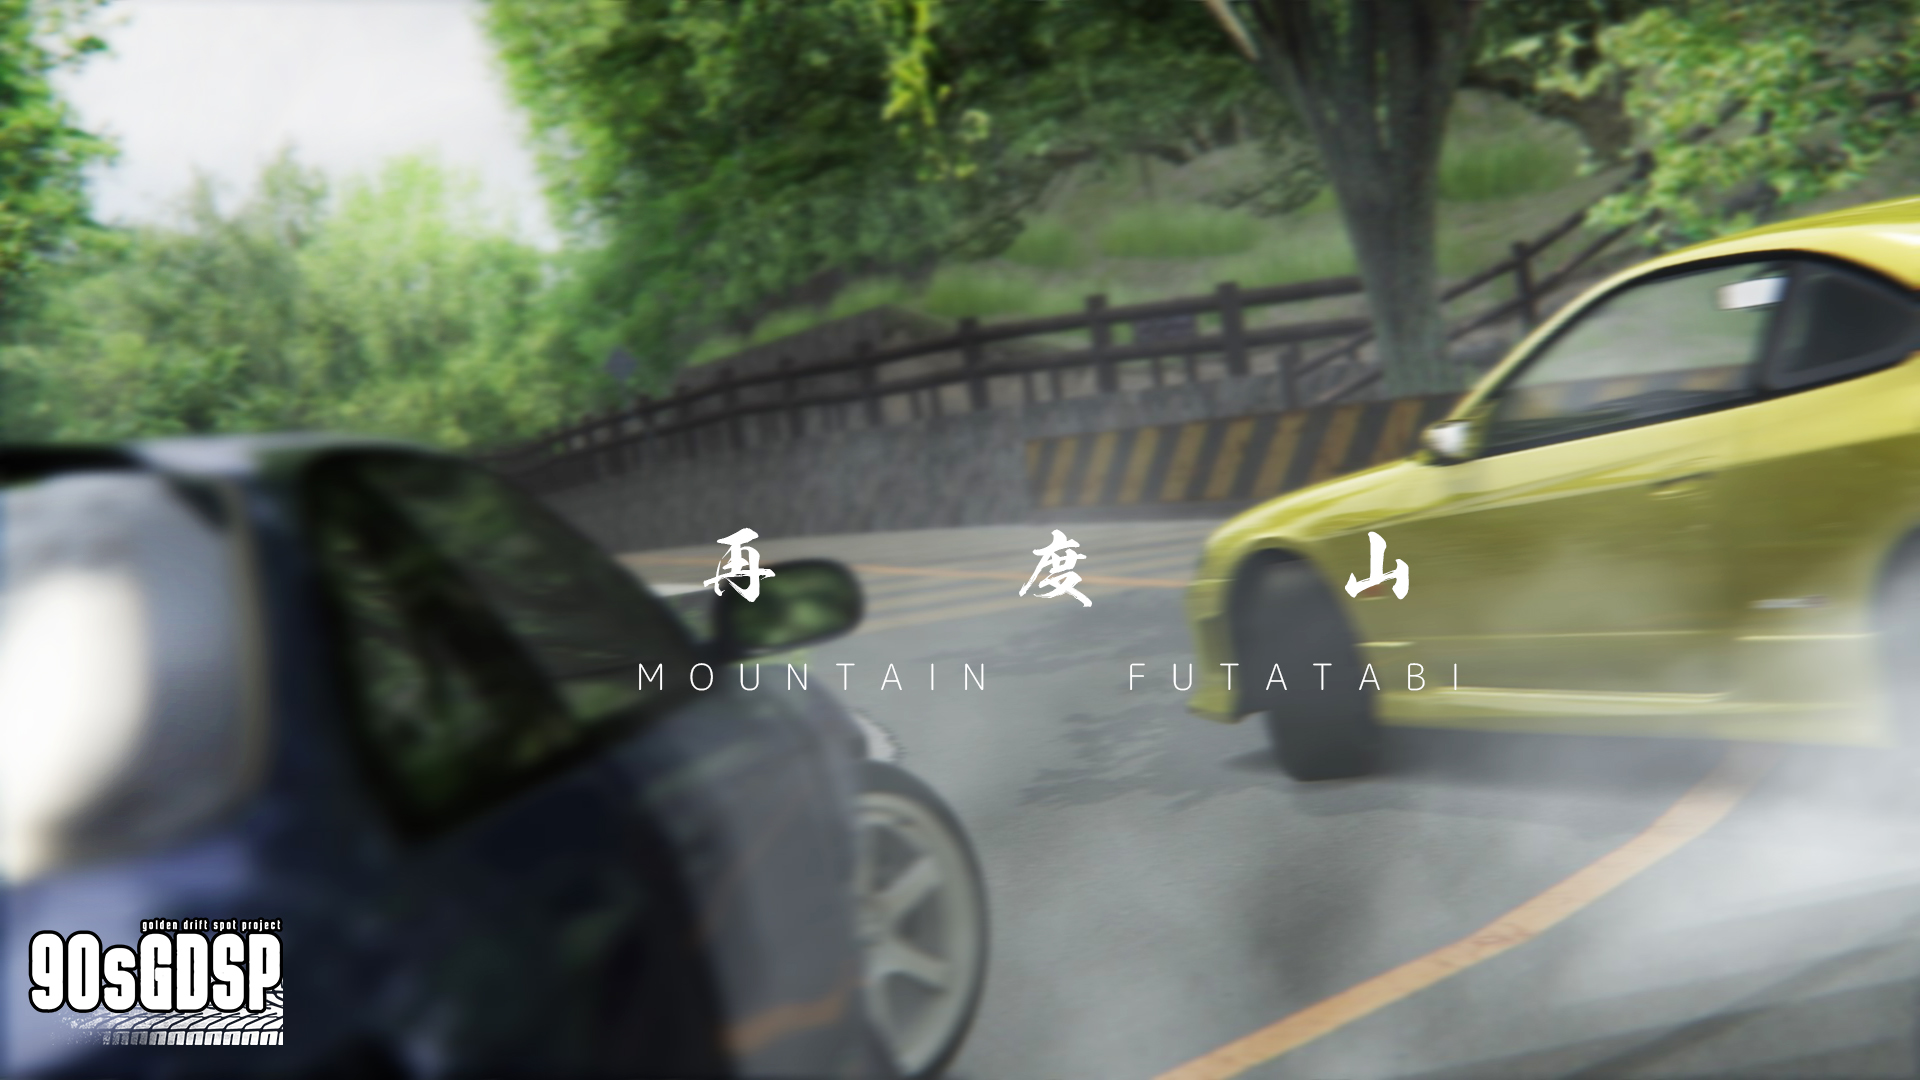 90's Golden Drift Spot Project #7 - Mountain Futatabi (再度